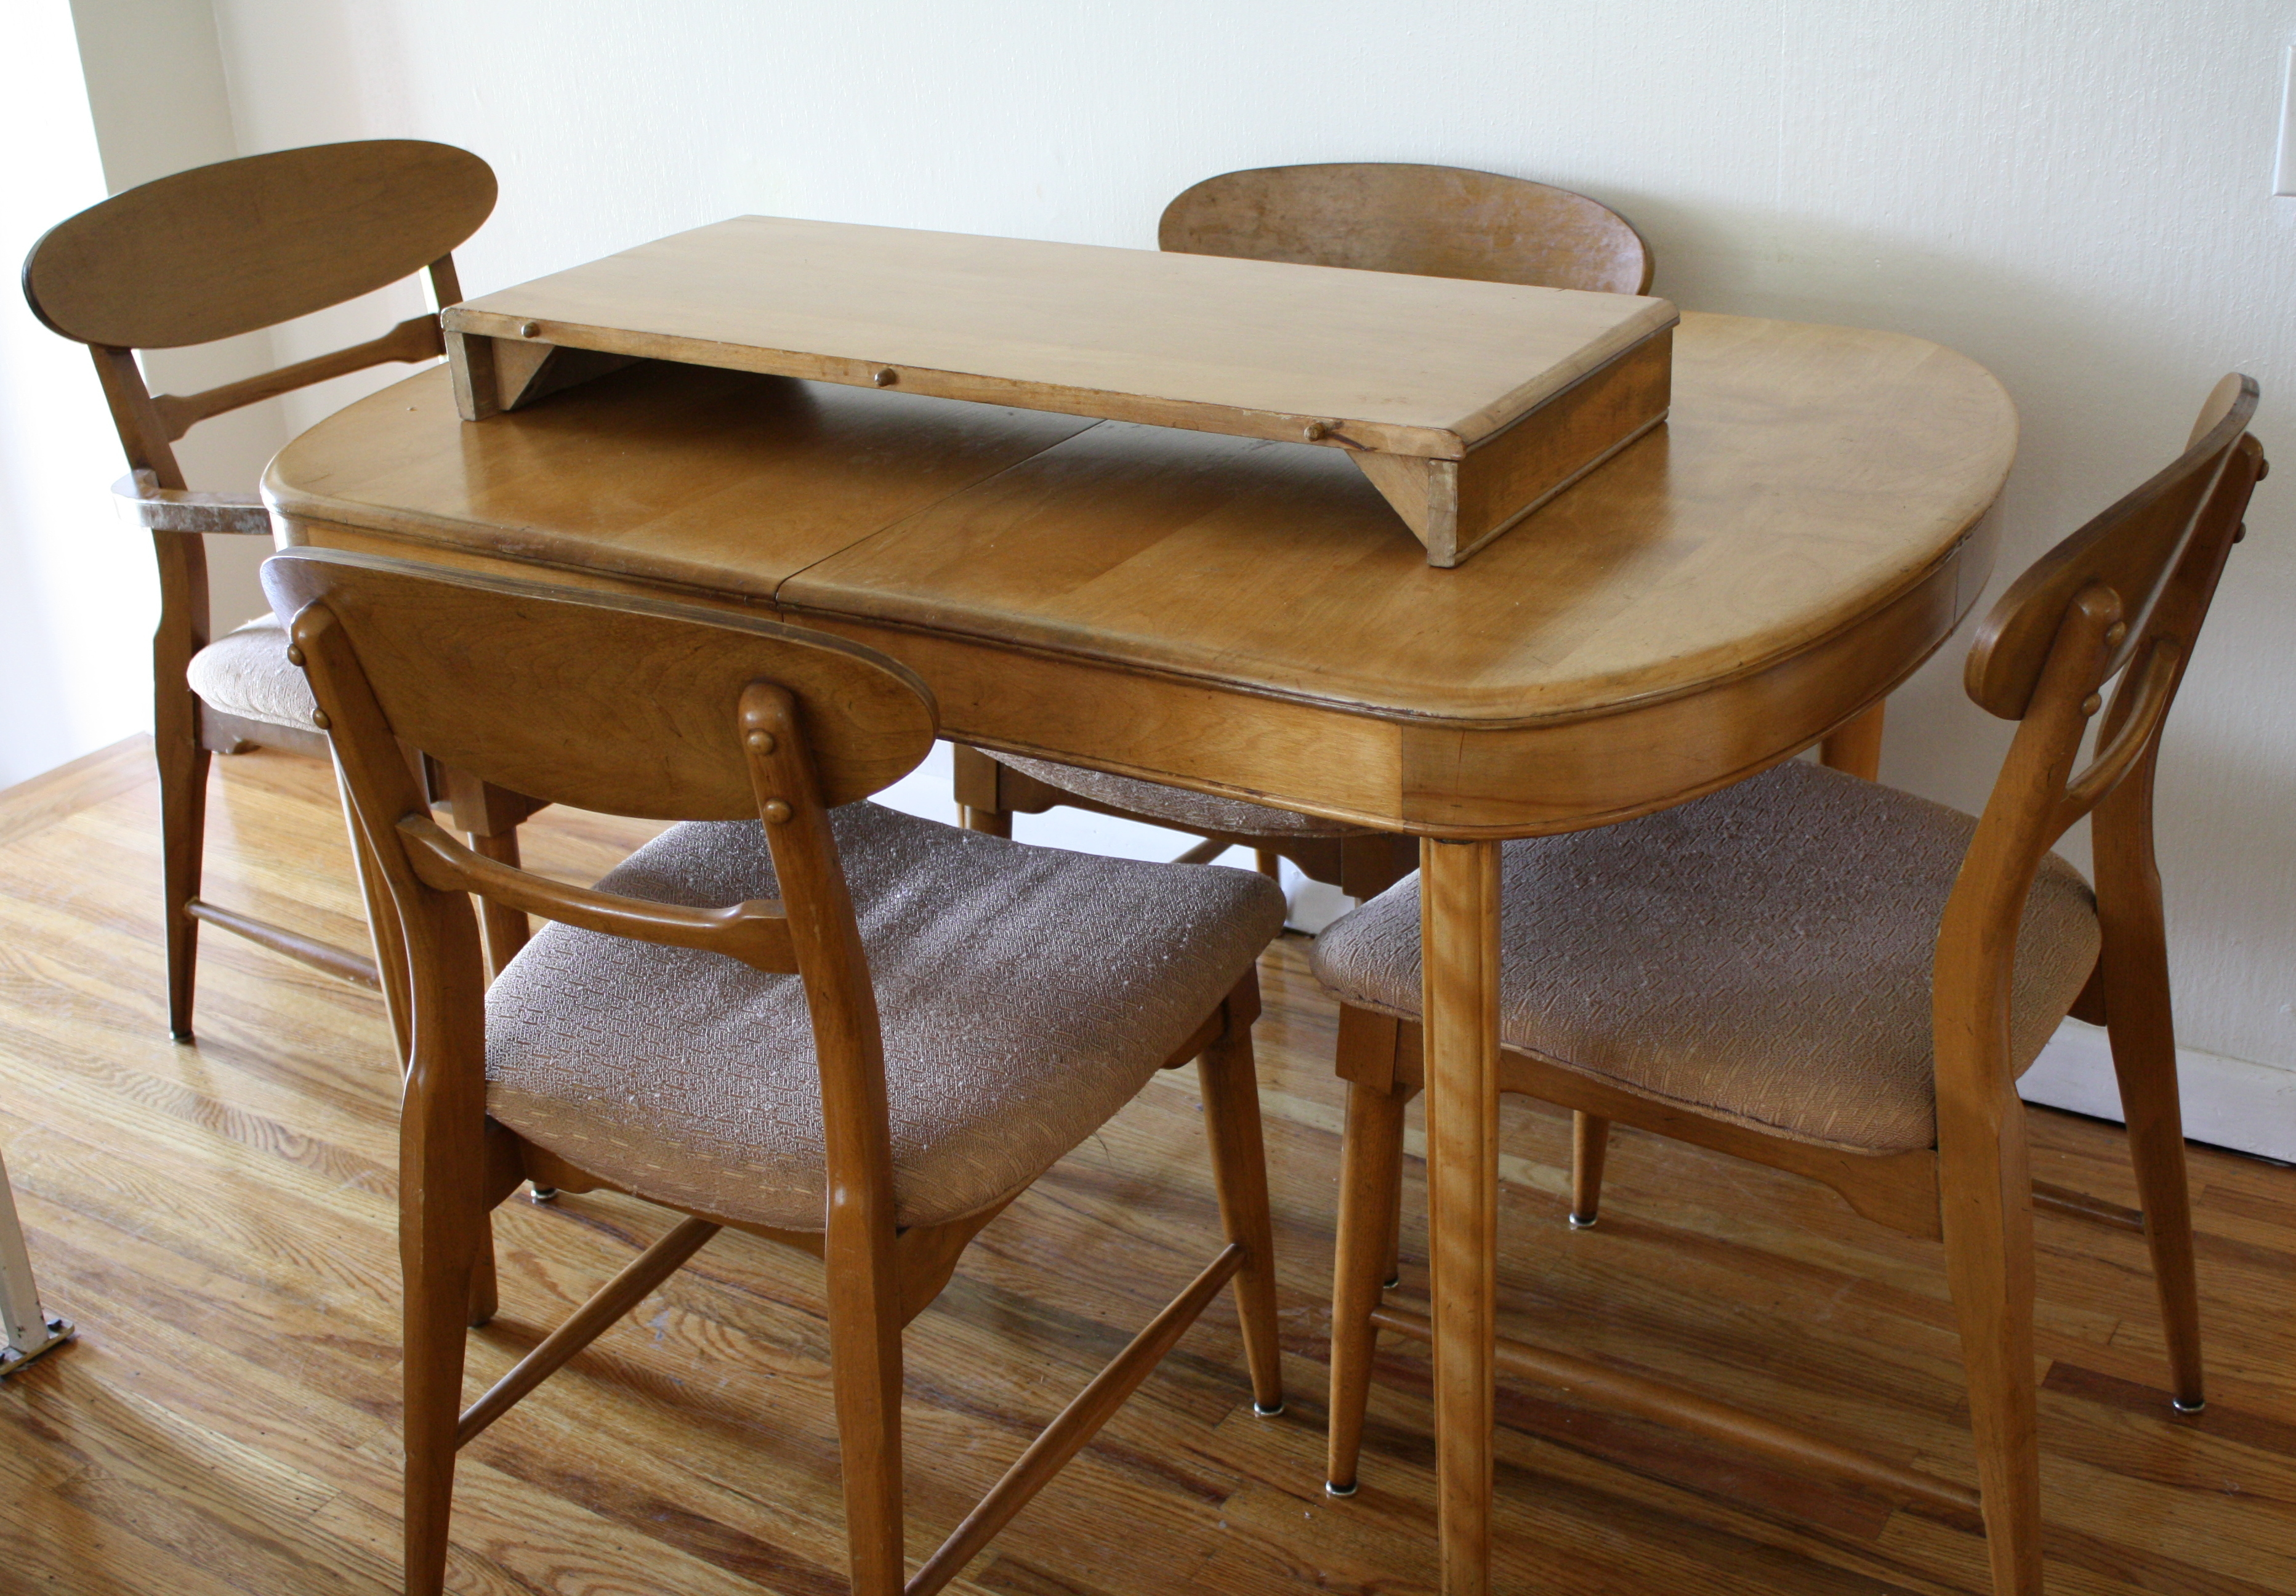 heywood wakefield dining table and chairs waffle chair walmart mid century modern set  style